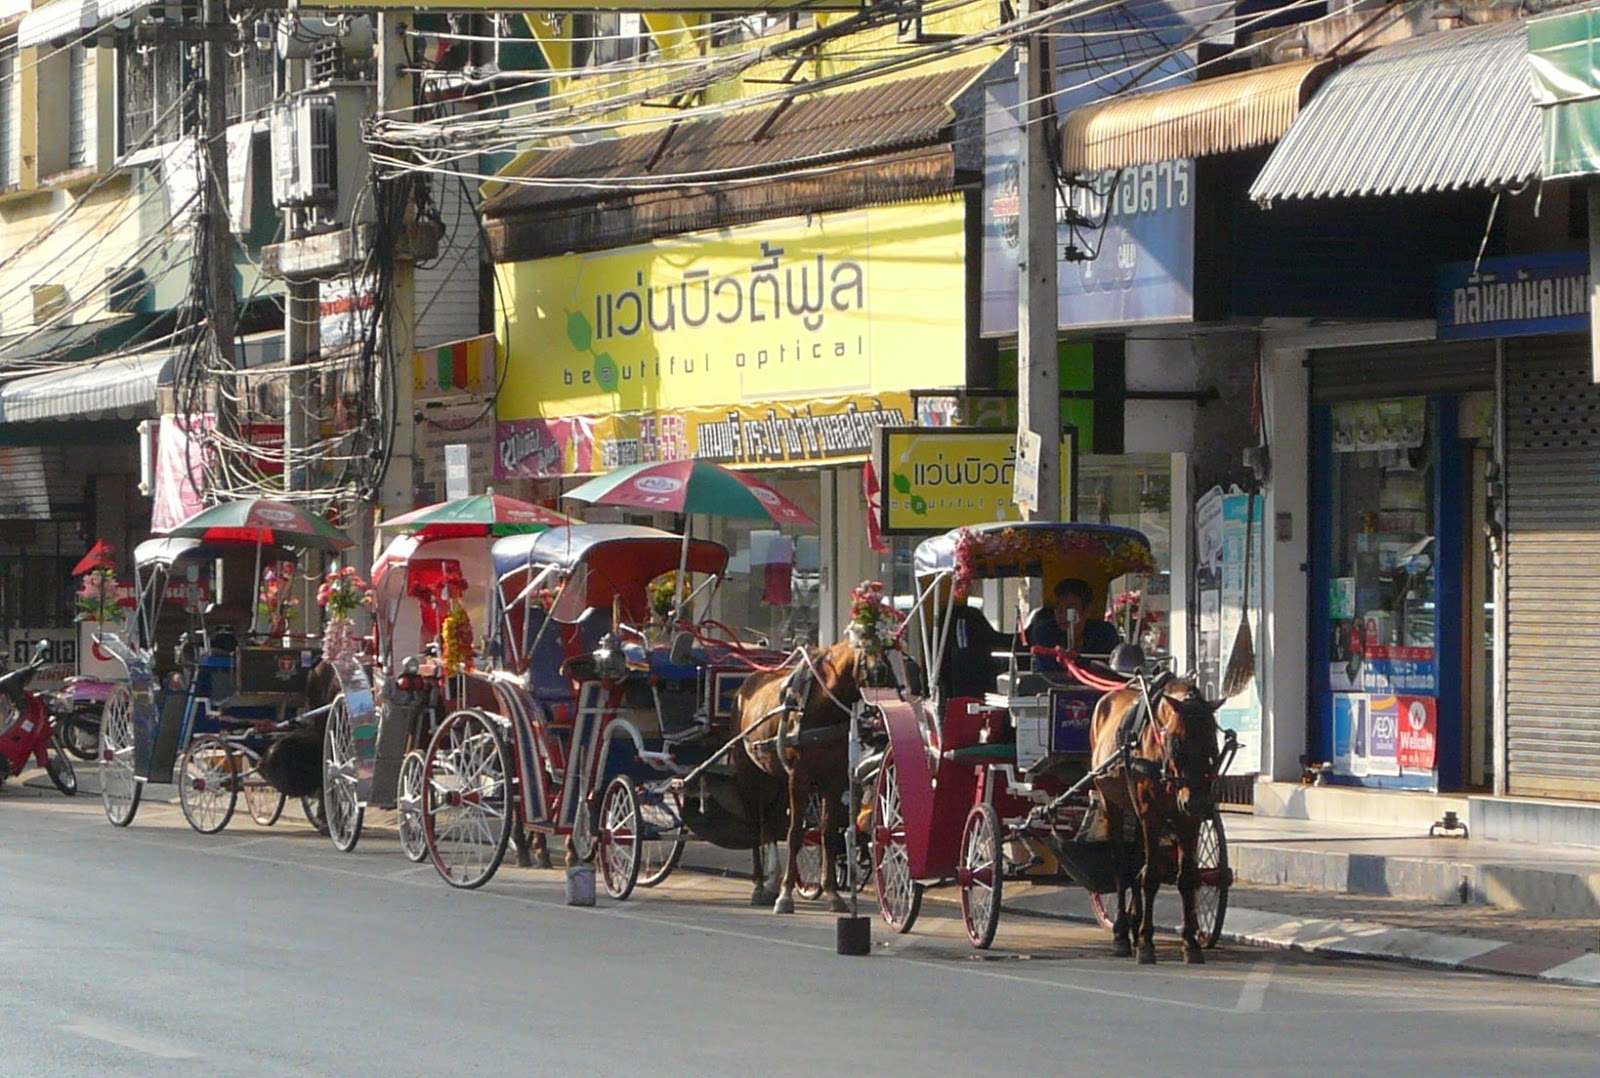 Horse taxis in Lampang